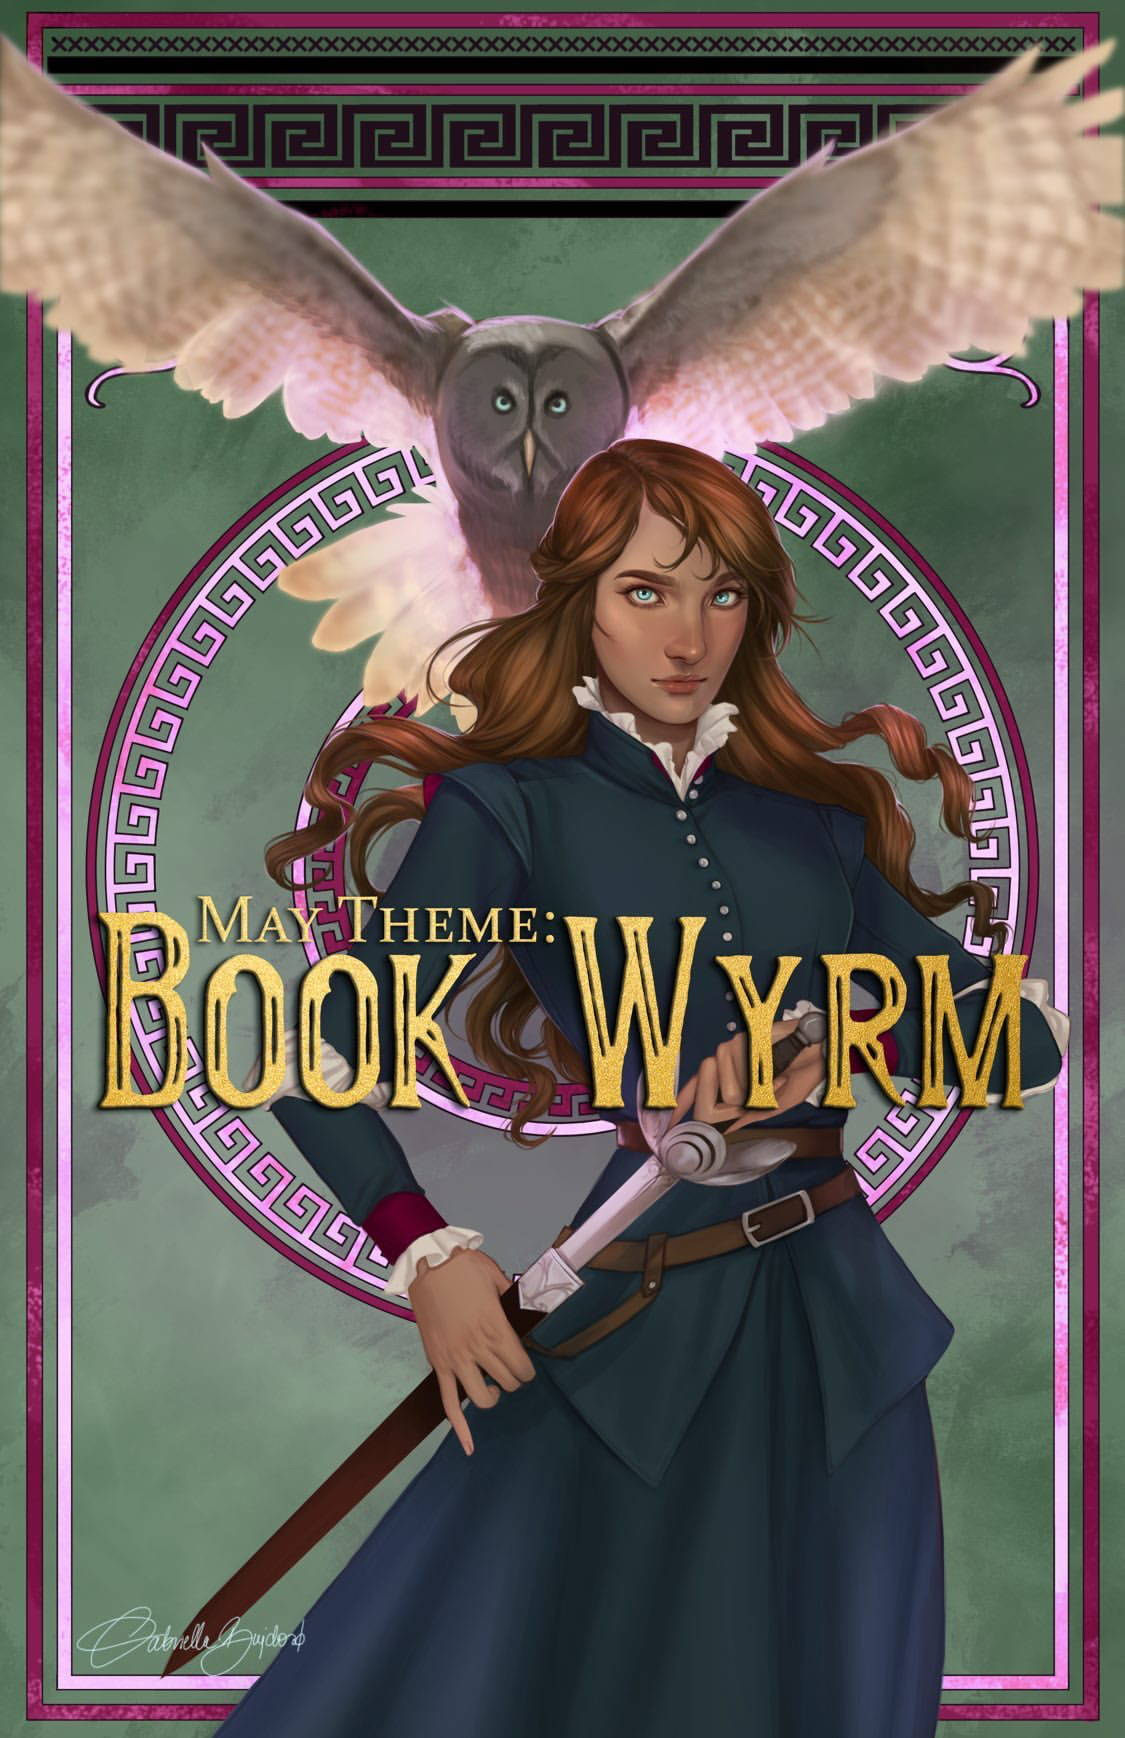 May Theme: Book Wyrm